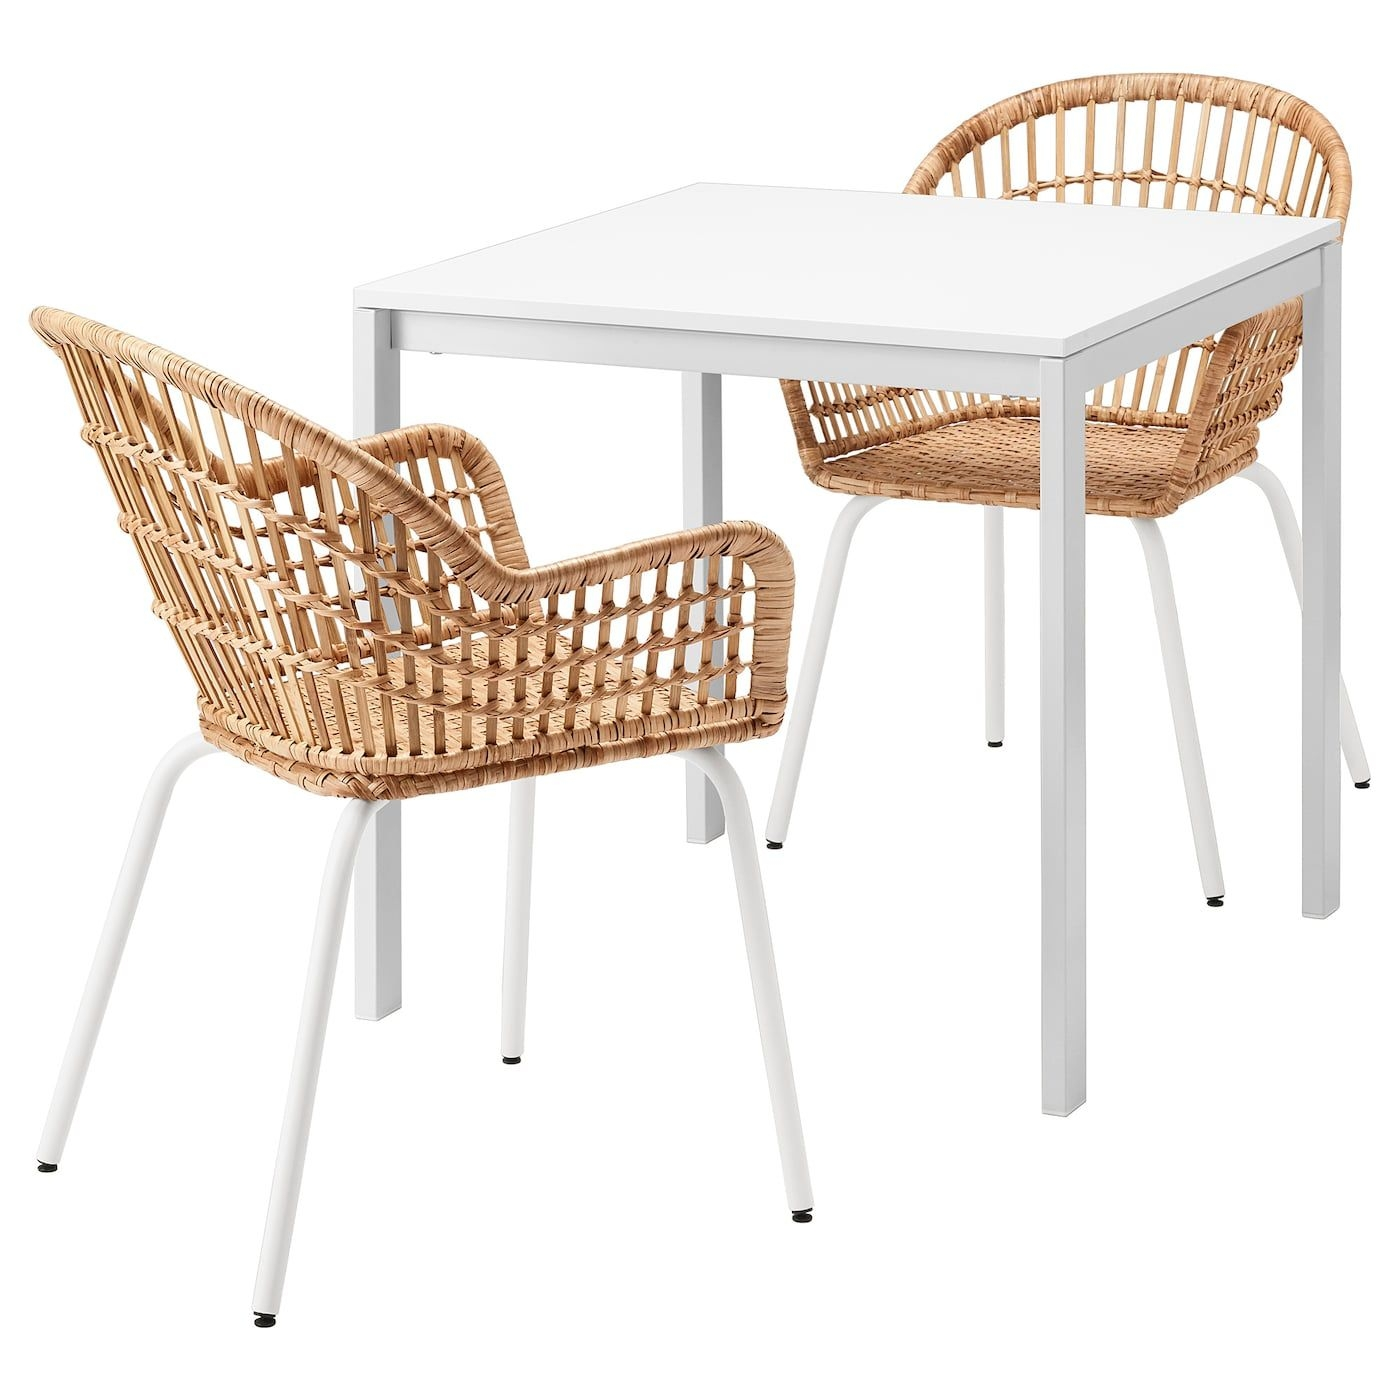 Melltorp  Nilsove Table And 2 Chairs  White Rattan White  Ikea